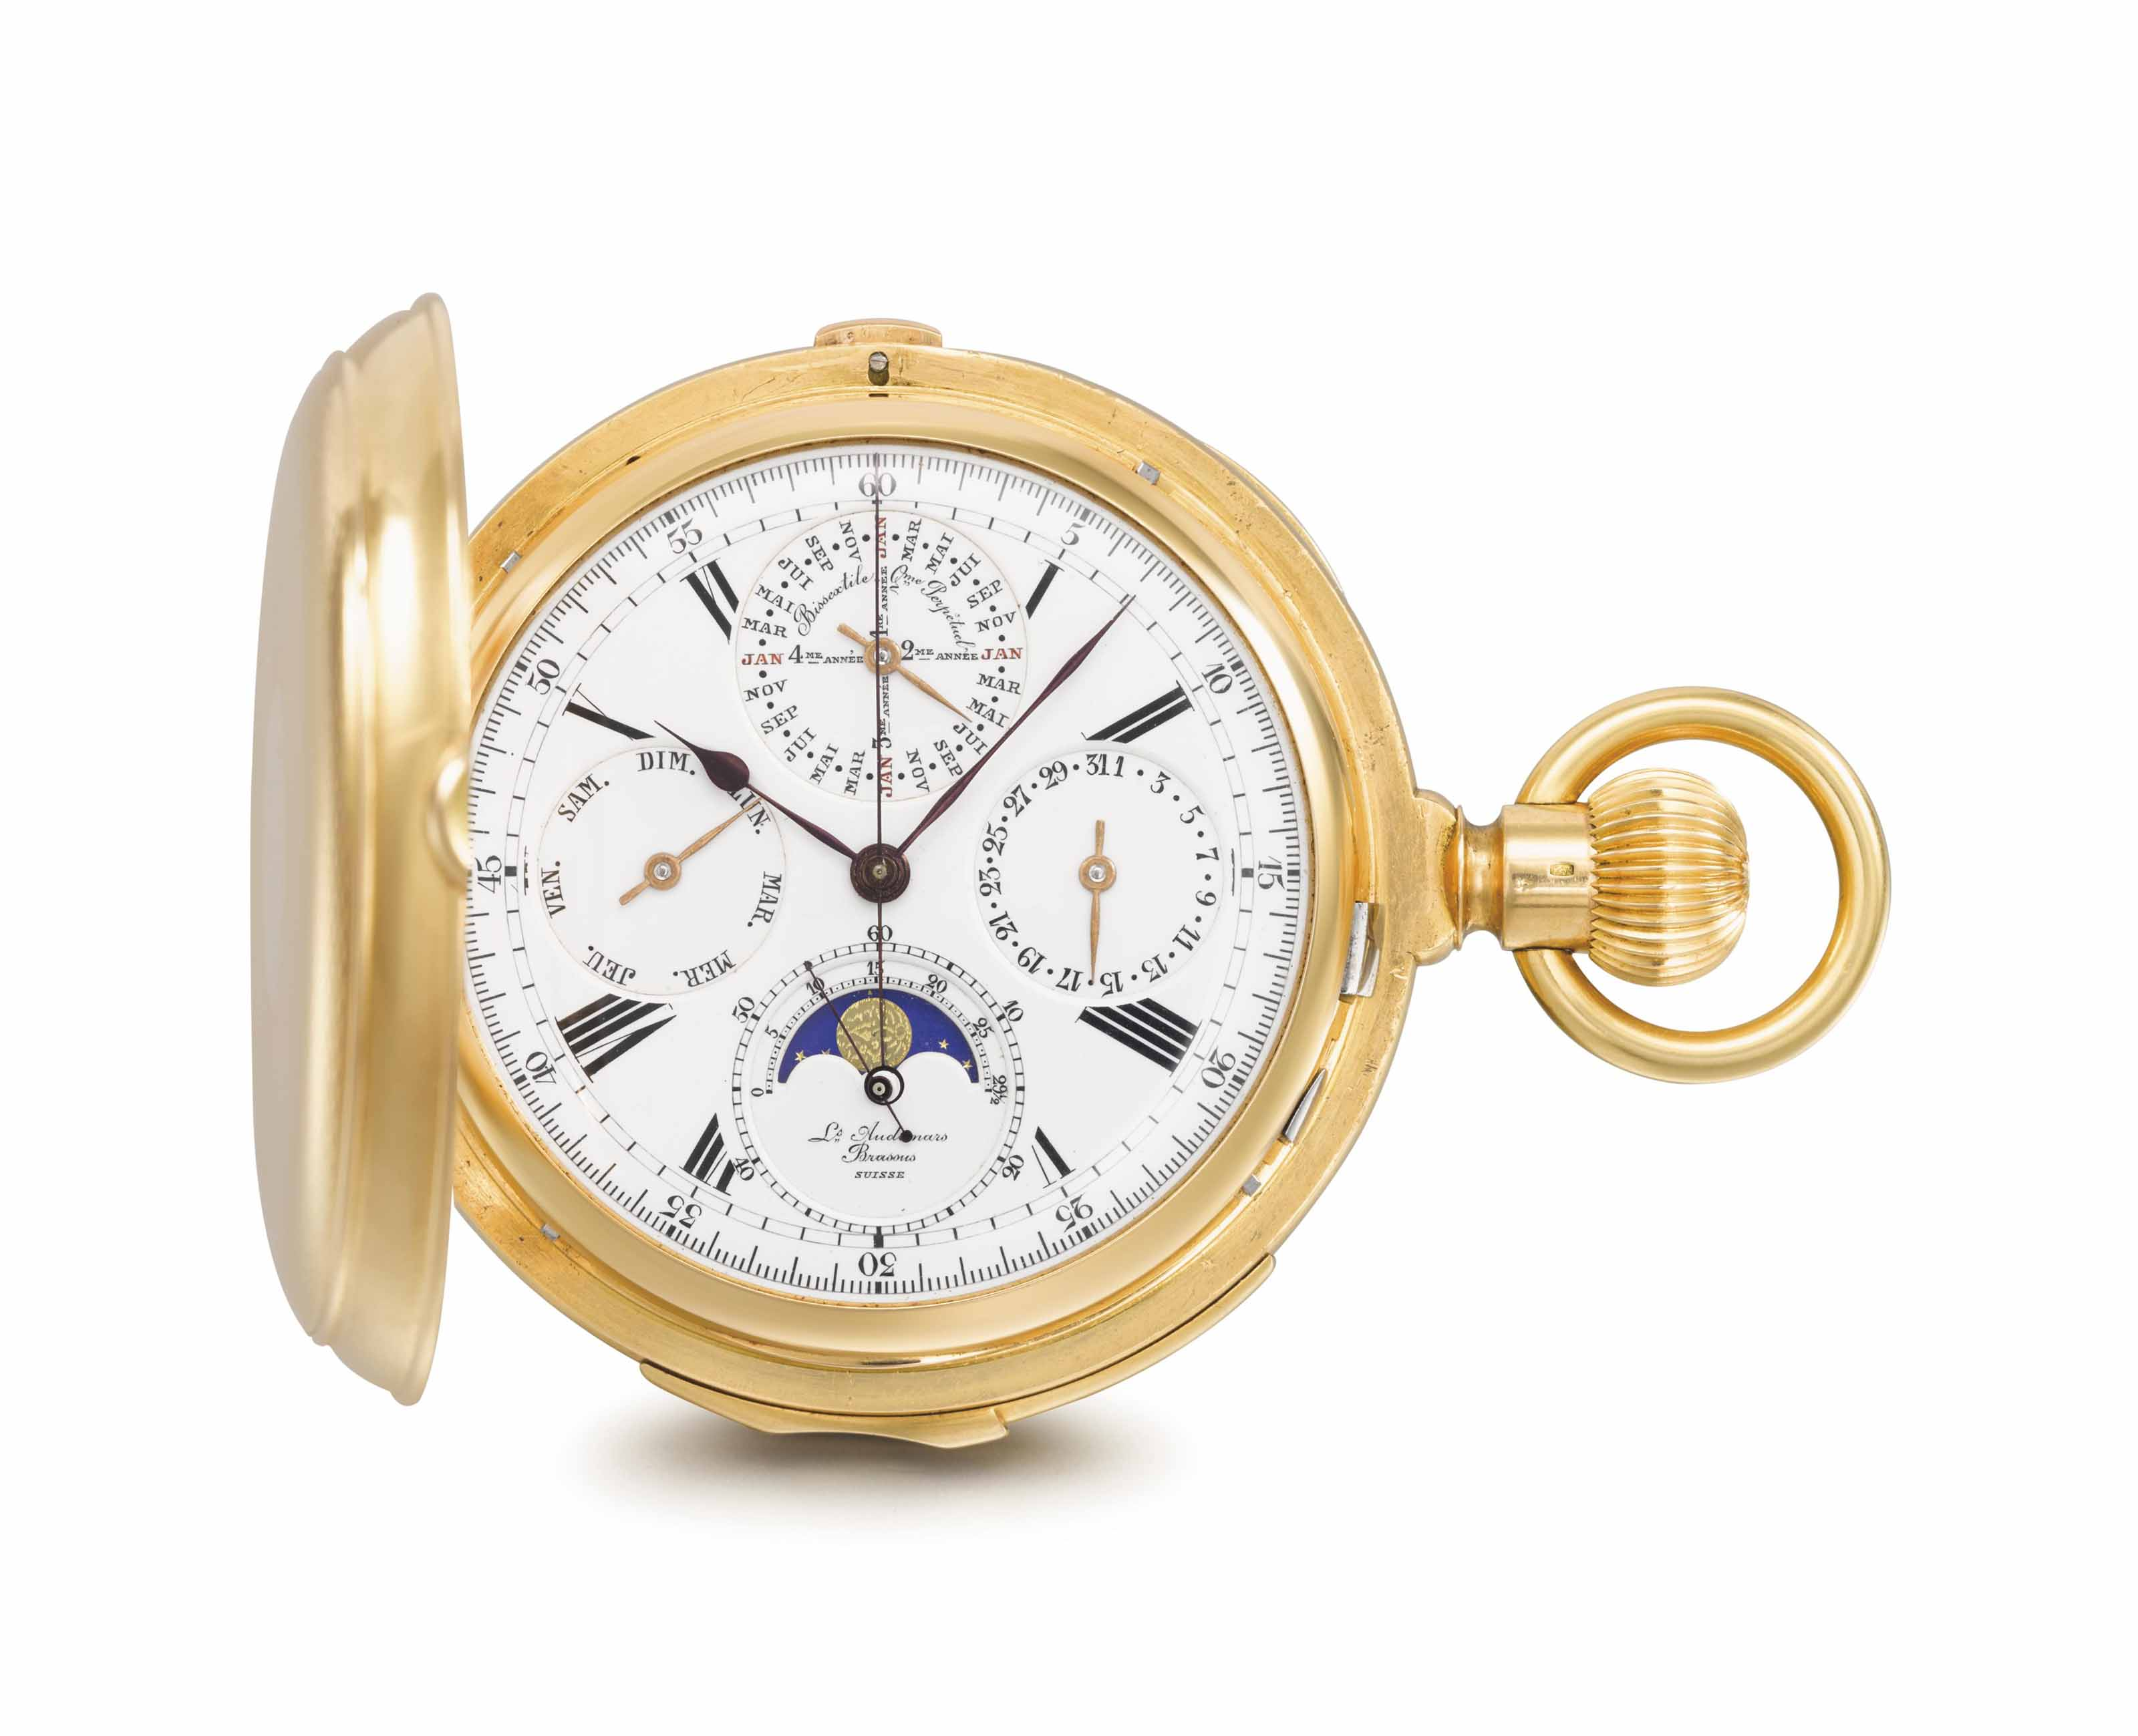 Audemars Piguet. A fine and rare 18K gold hunter case minute repeating perpetual calendar chronograph keyless lever watch with phases of the moon